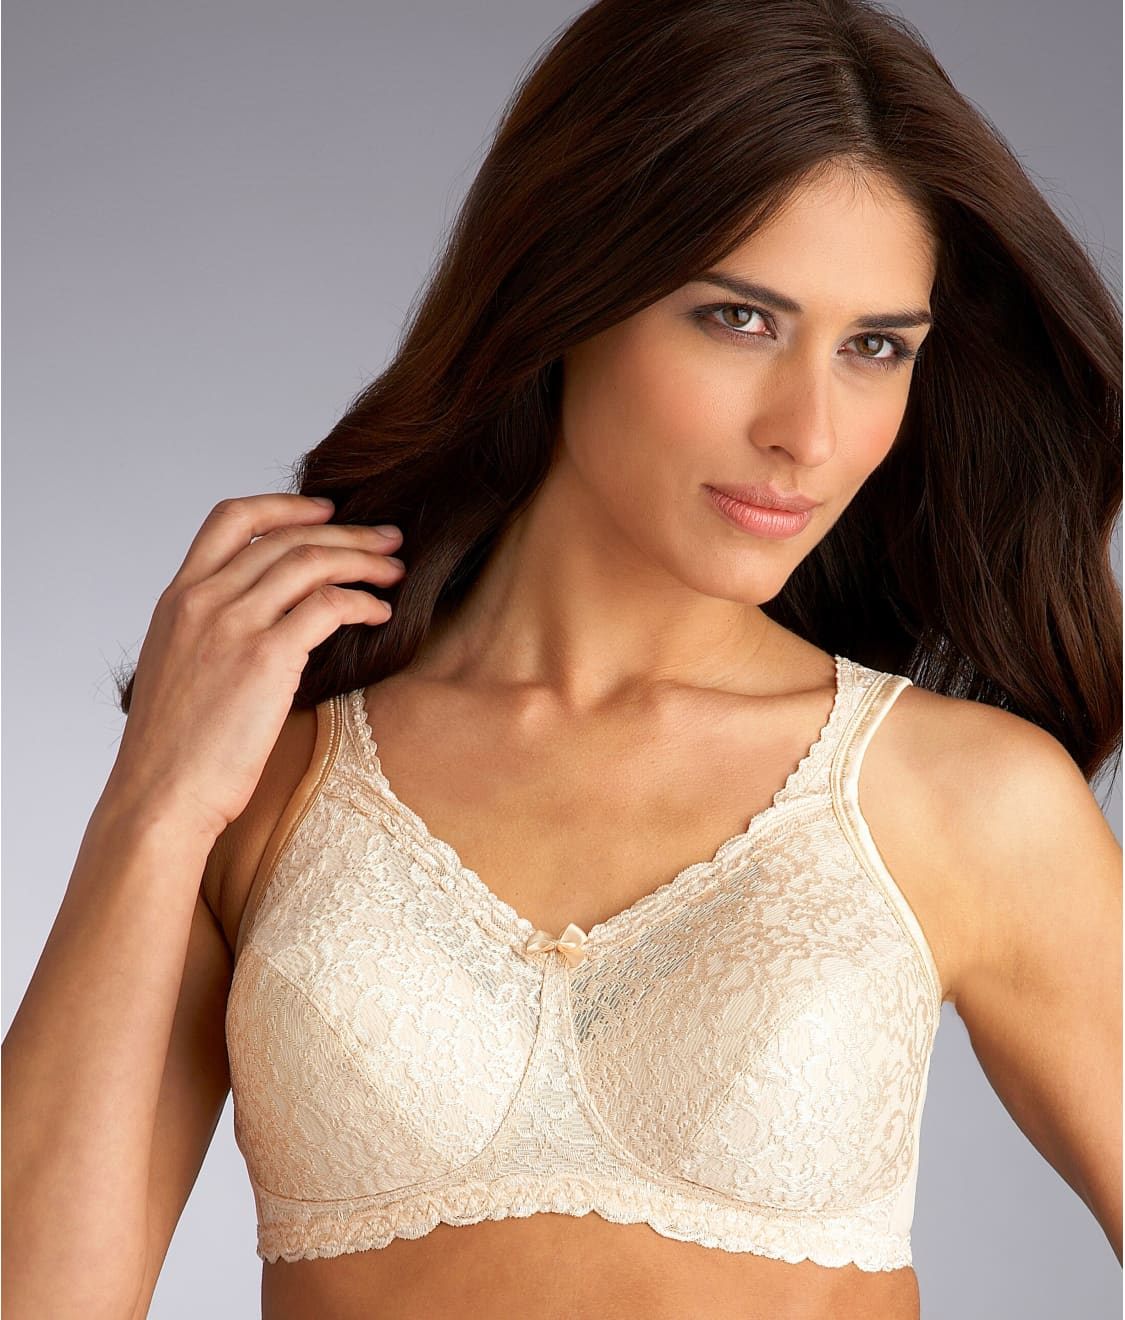 f3674e8f9e Playtex 18 Hour Cooling Comfort Wire-Free Bra